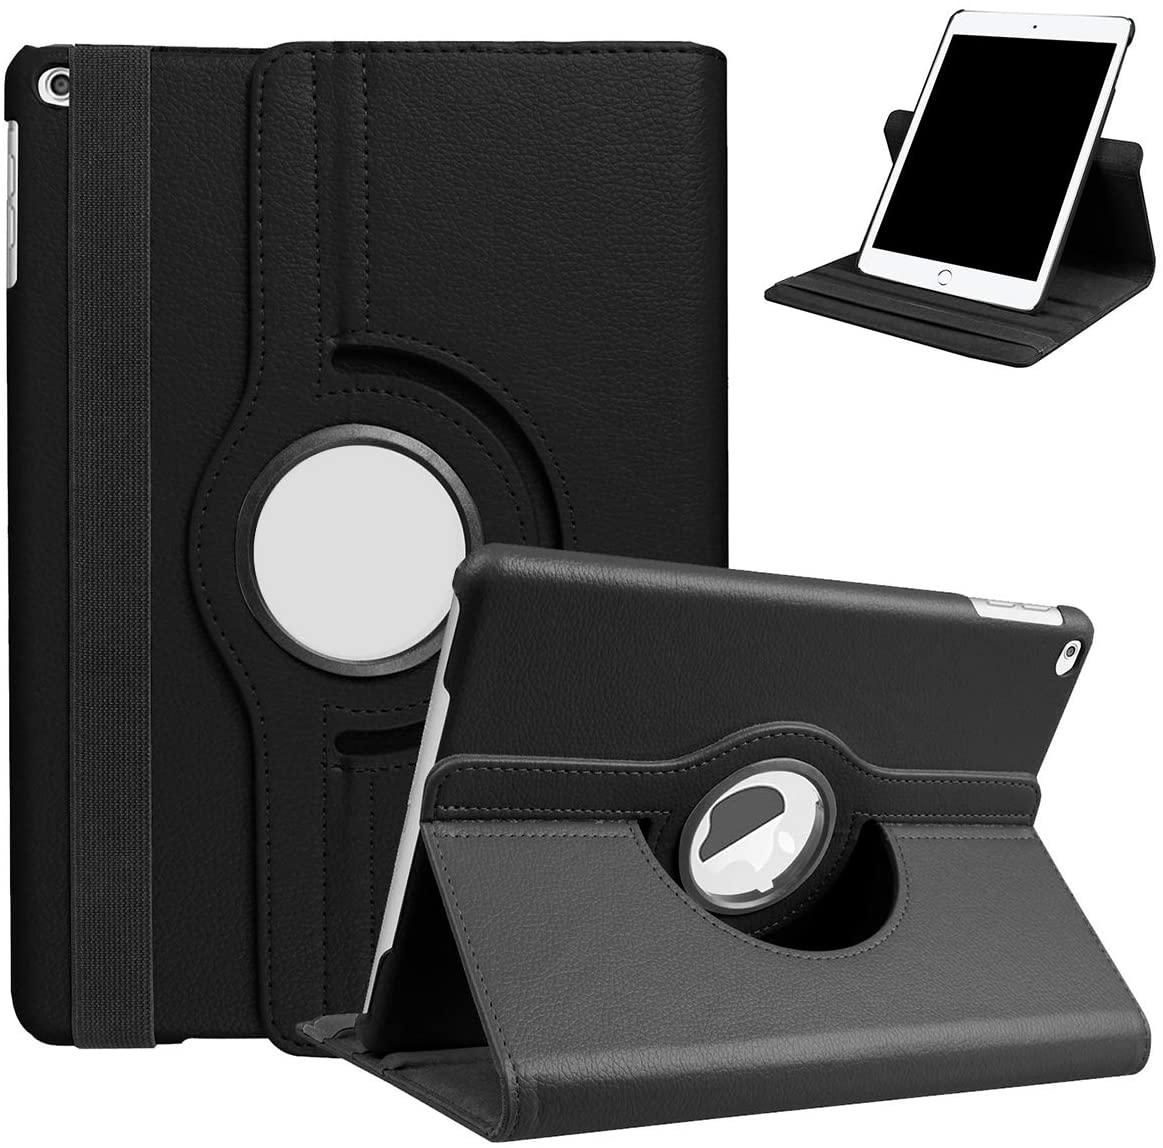 KAPRNA Rotating Case for iPad 7th Generation,Premium Tablet Case 360 Degree Rotating Stand Cover for iPad 10.2 2019/iPad Air 2019 and iPad Pro 10.5 (2017) Case,Black